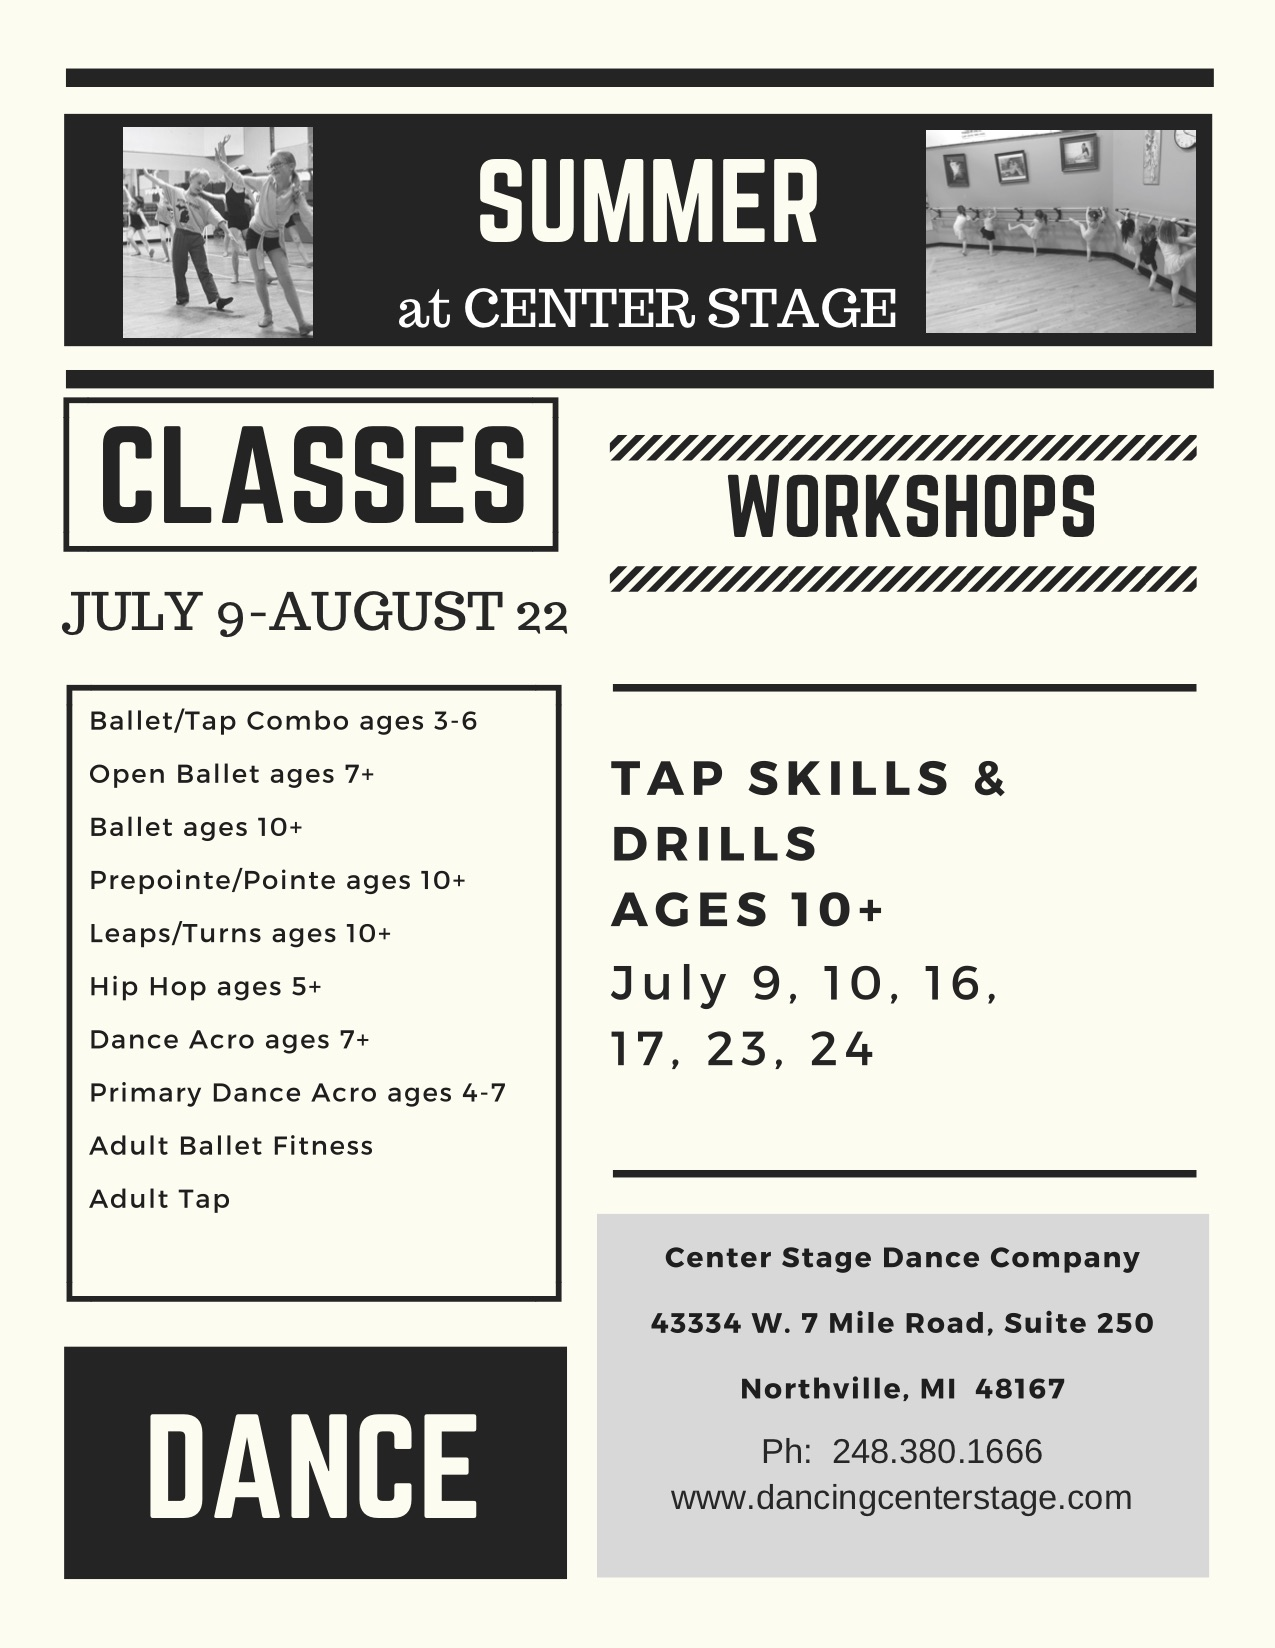 summer dance classes, camps and workshops flyer